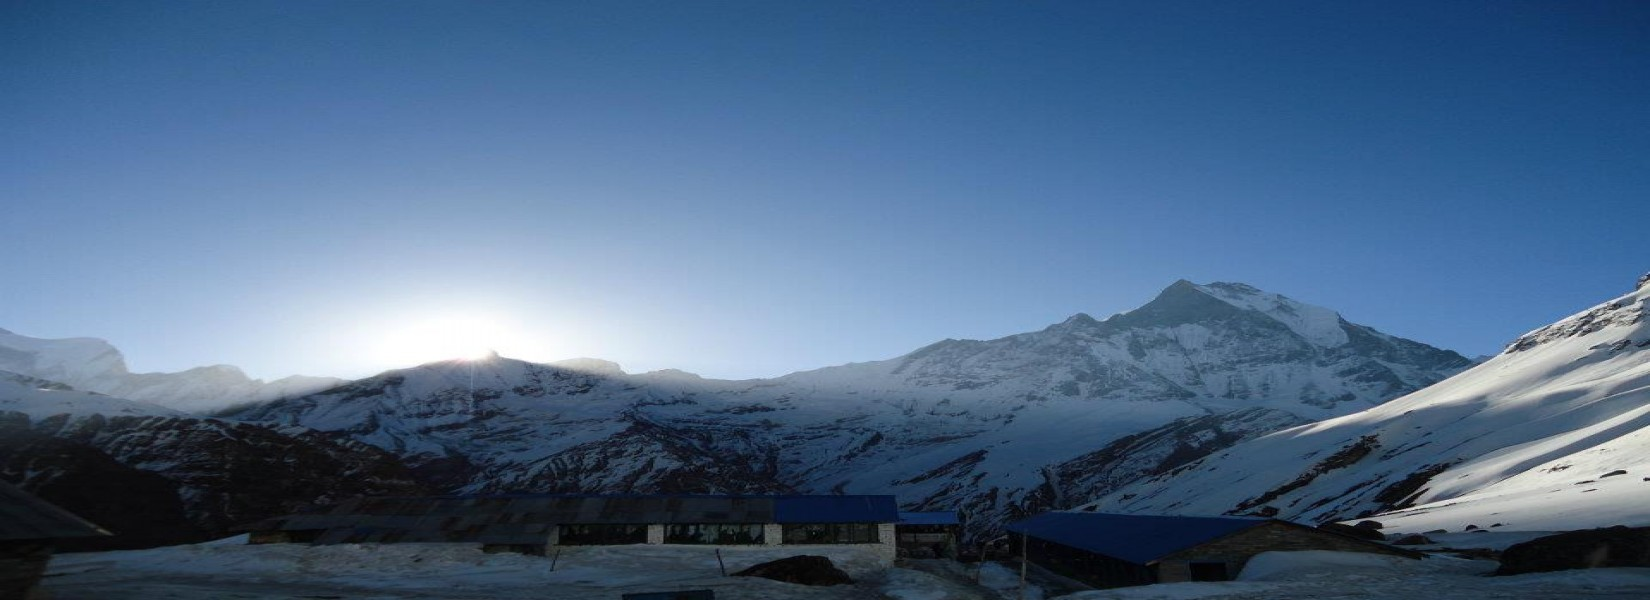 Luxury Annapurna Base Camp Trek with 5 Star Accommodation